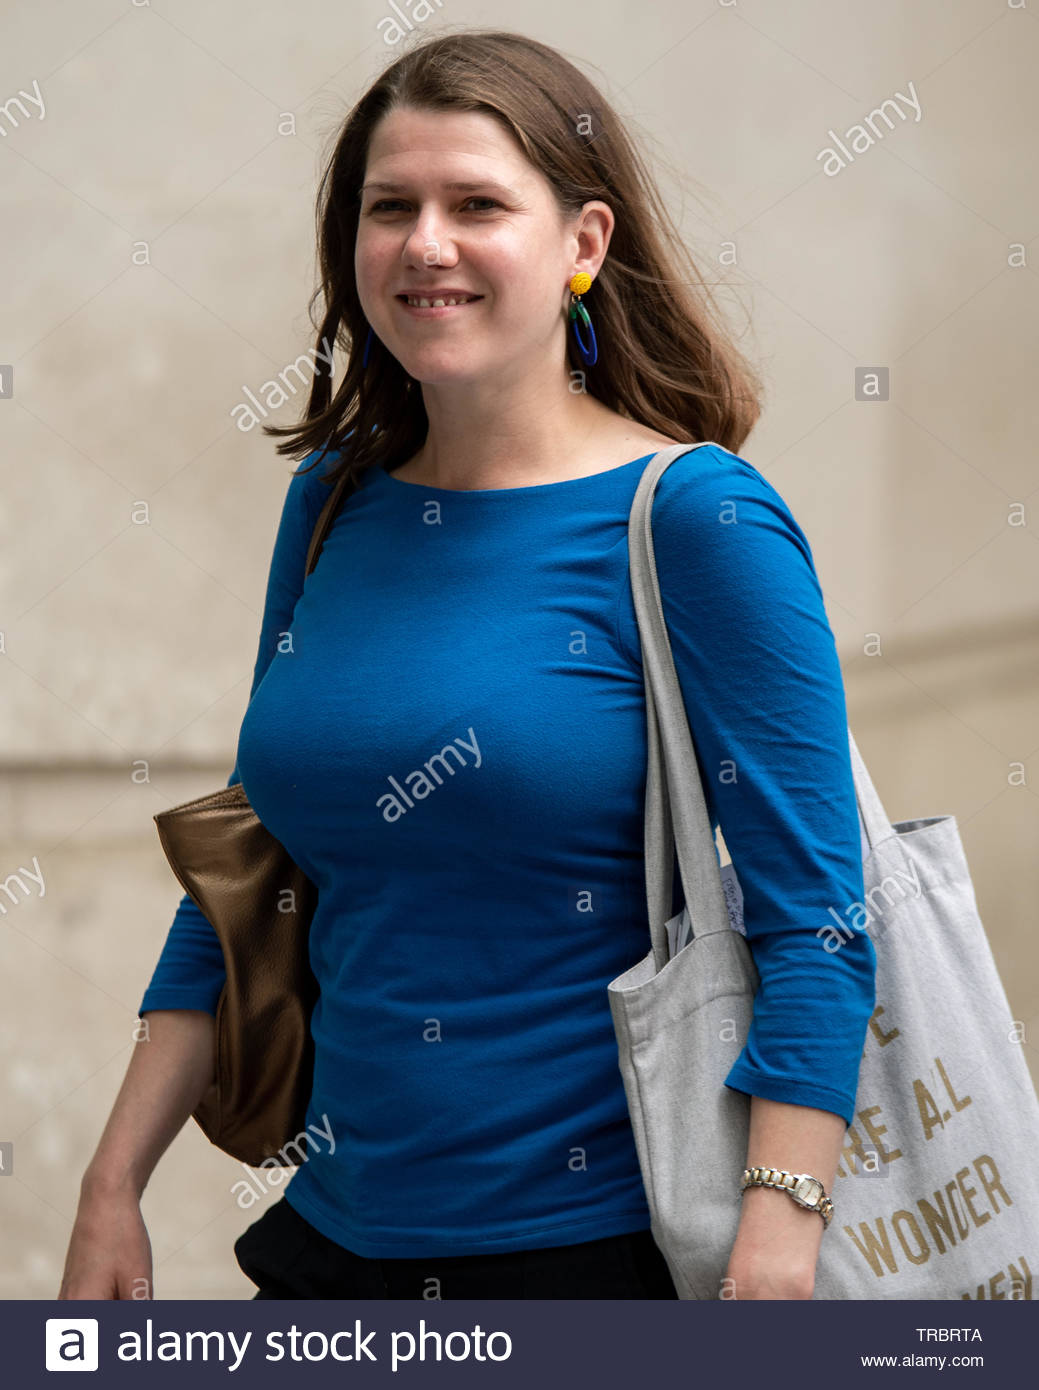 Prospective Liberal Democrats Leader Jo Swinson at BBC Broadcasting House for an appearance on the Andrew Marr Show London, Great Britain, 02 Jun 2019  Credit: David Nash/DNImages - Stock Image